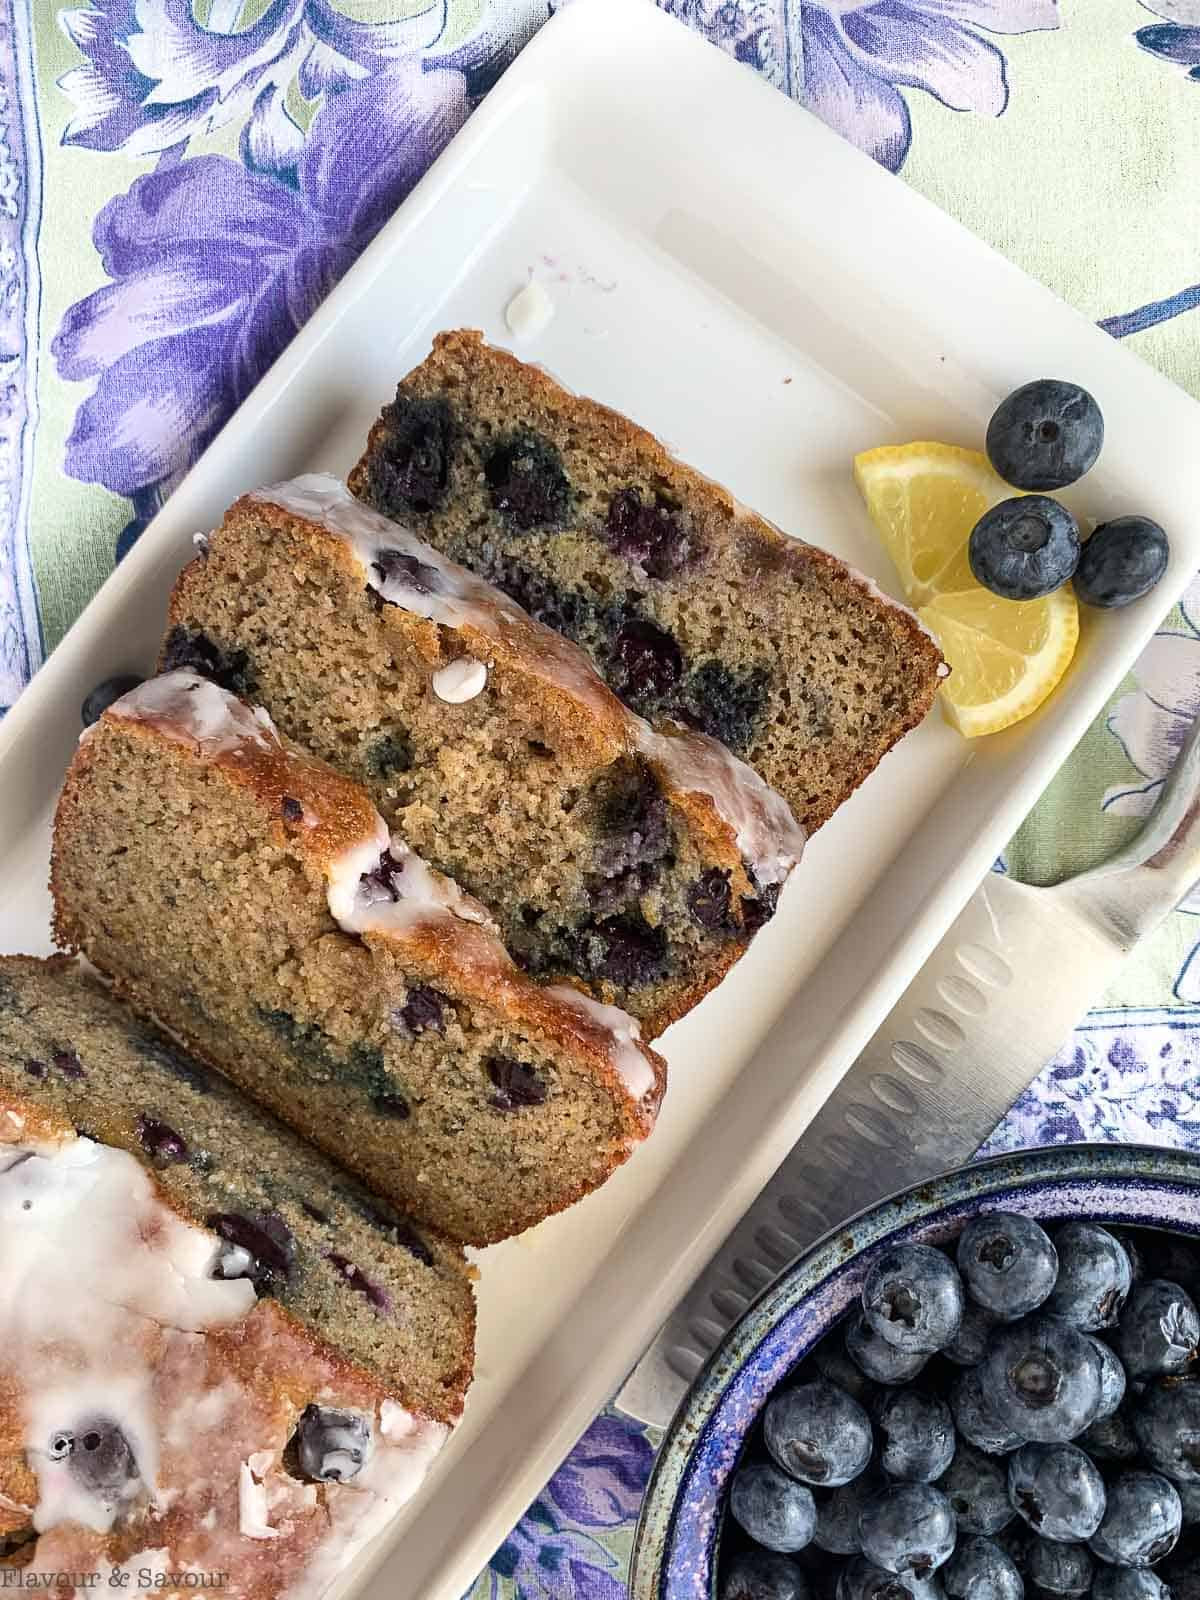 Slices of Blueberry Banana Bread on a white plate with a bowl of blueberries nearby.